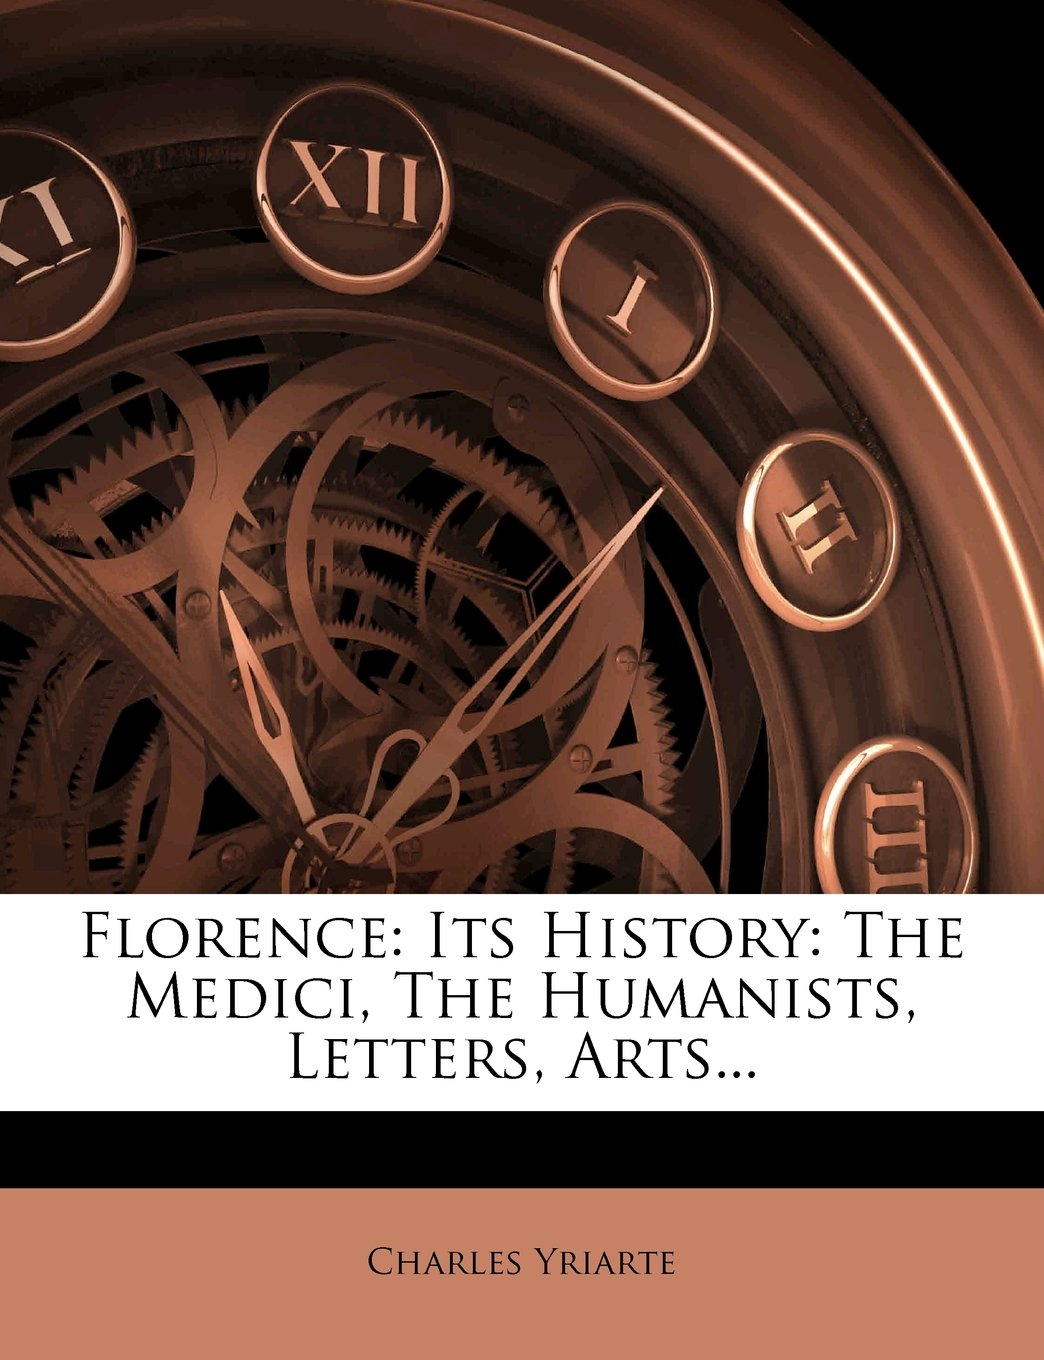 Read Online Florence: Its History: The Medici, The Humanists, Letters, Arts... PDF